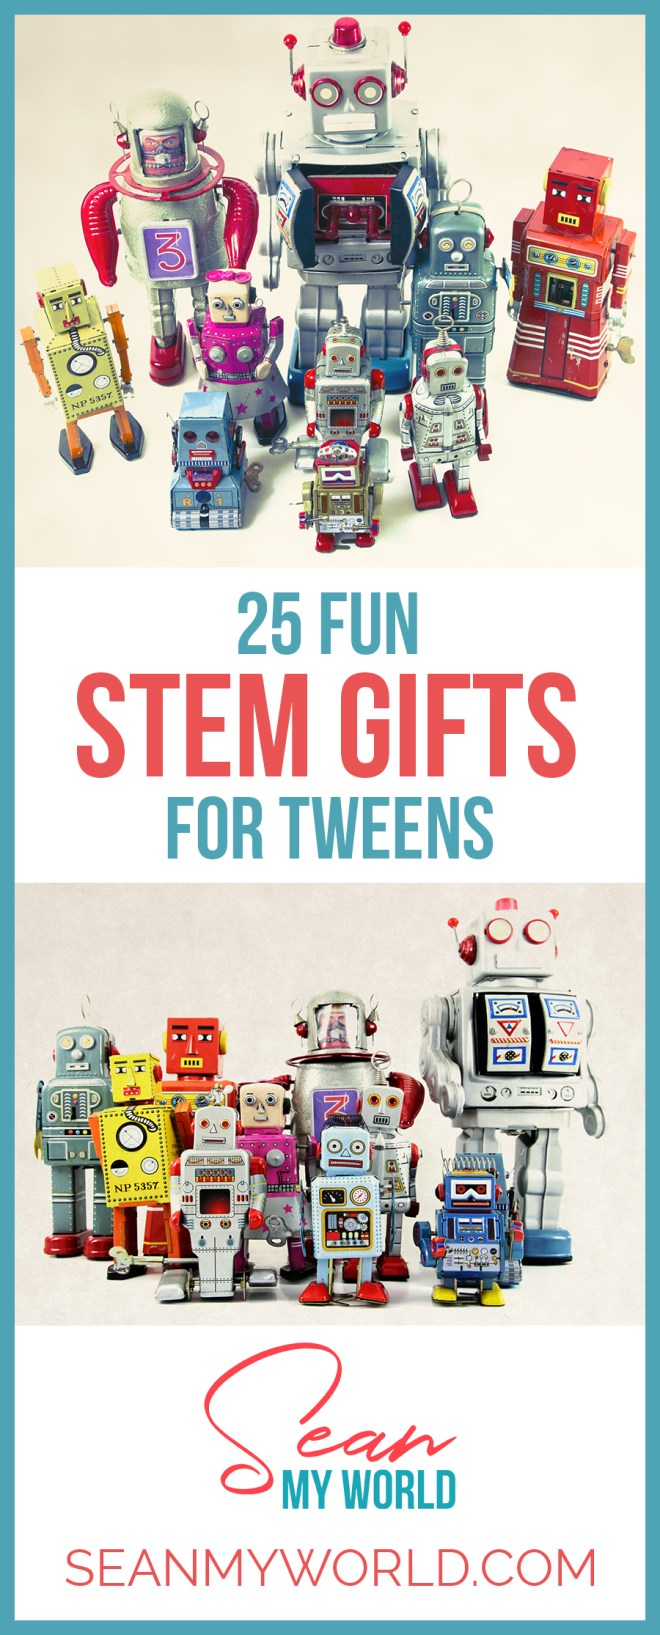 Looking for educational but fun STEM gifts for tweens? These 25 STEM gifts are so fun that your tween won't even realize they're educational!